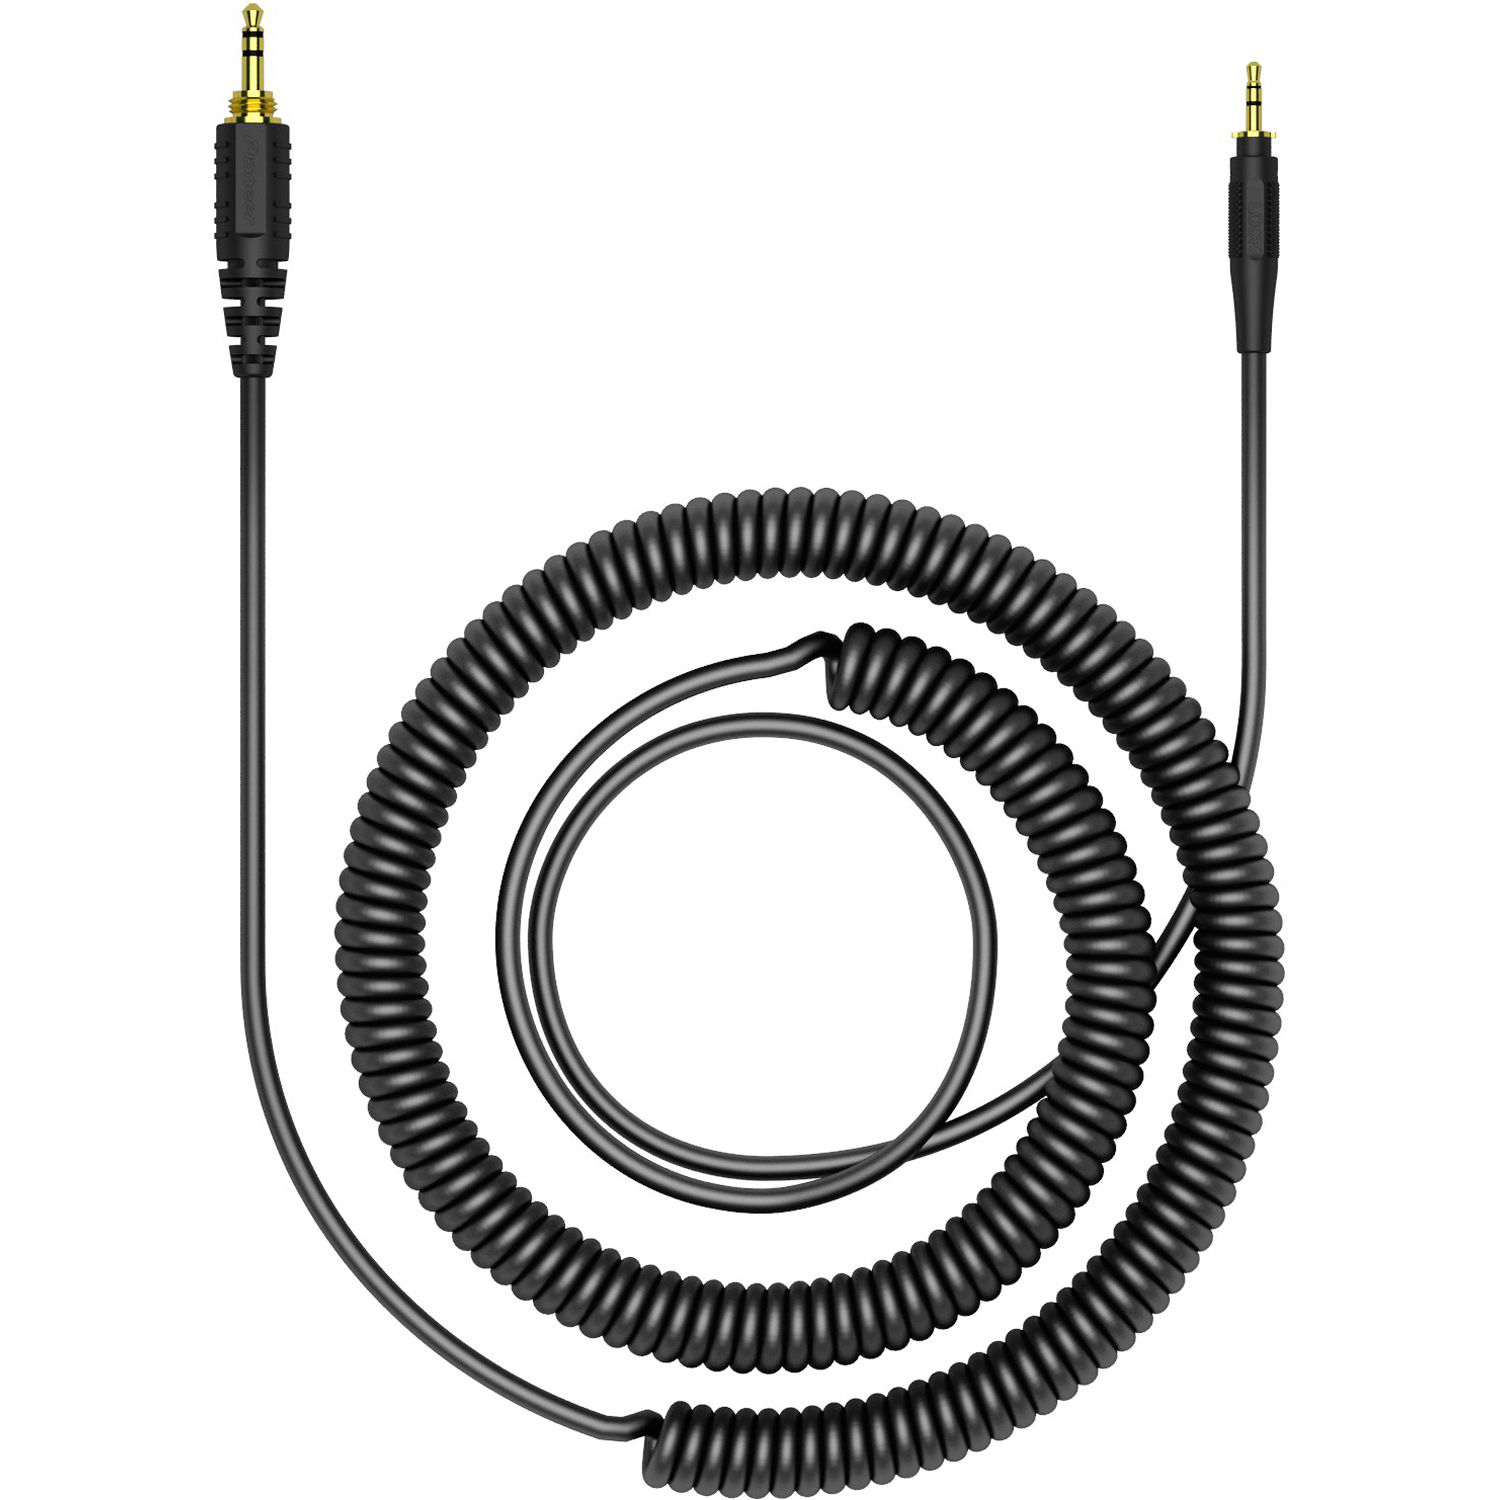 Pioneer Dj Coiled Cable For Hrm 7 Hrm 6 Amp Hrm 5 Hc Ca